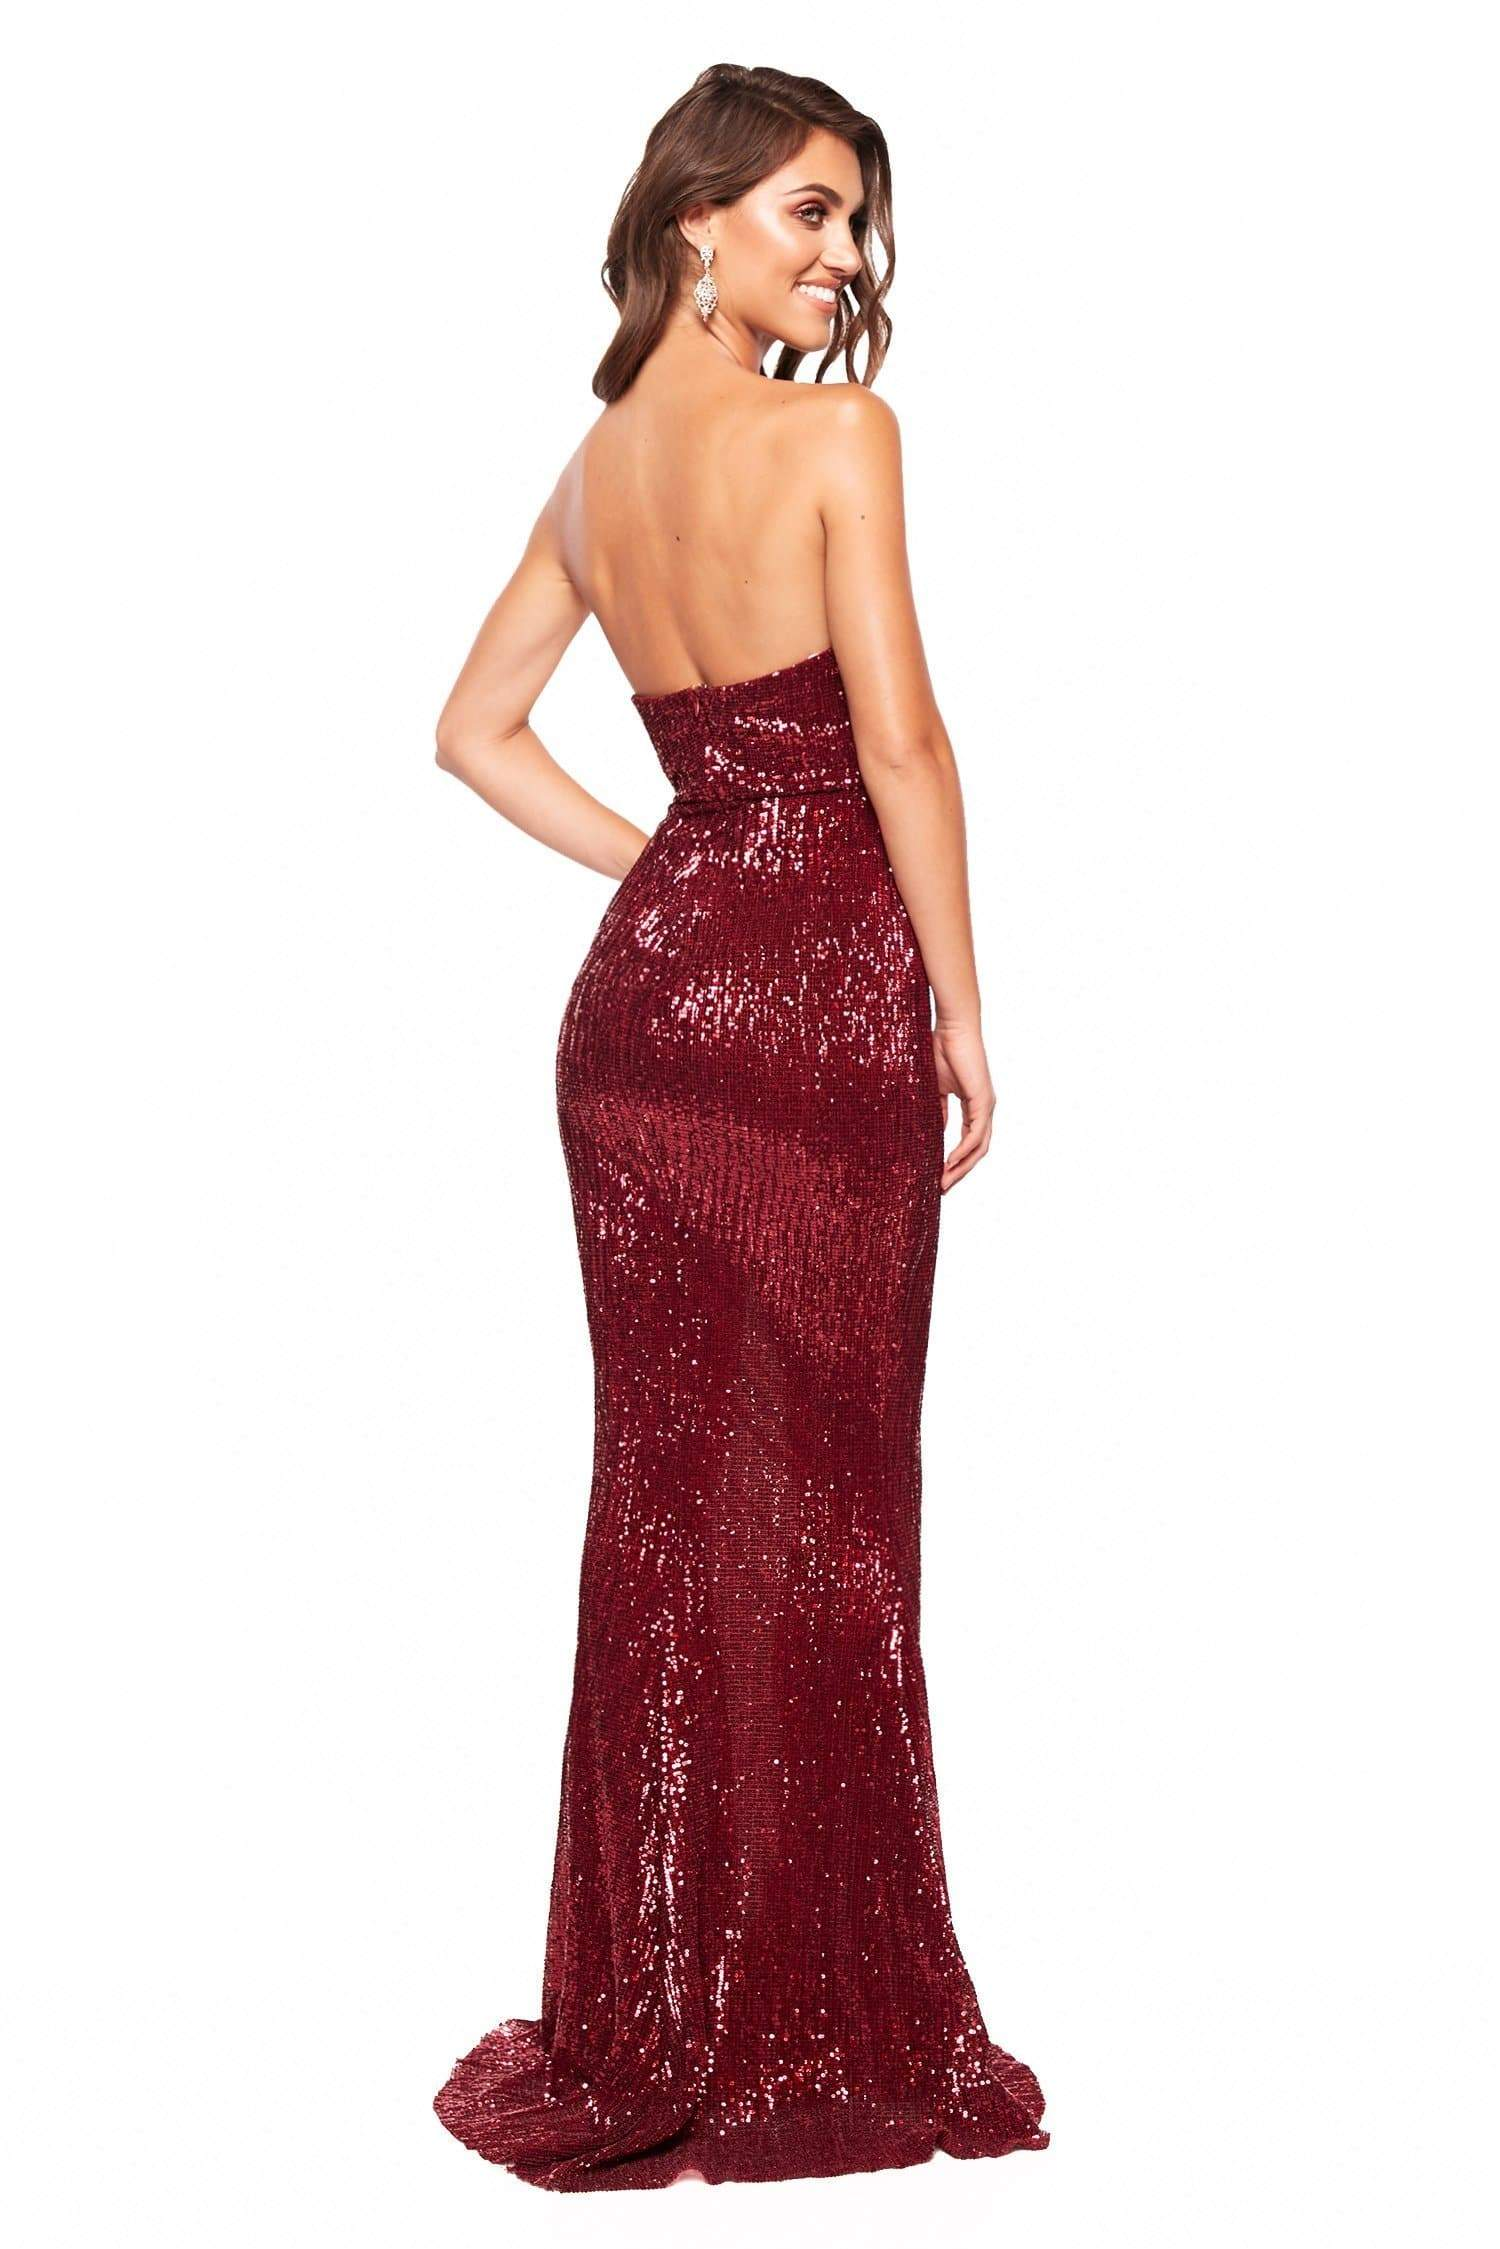 A&N Katya - Burgundy Strapless Sequin Gown with Side Slit